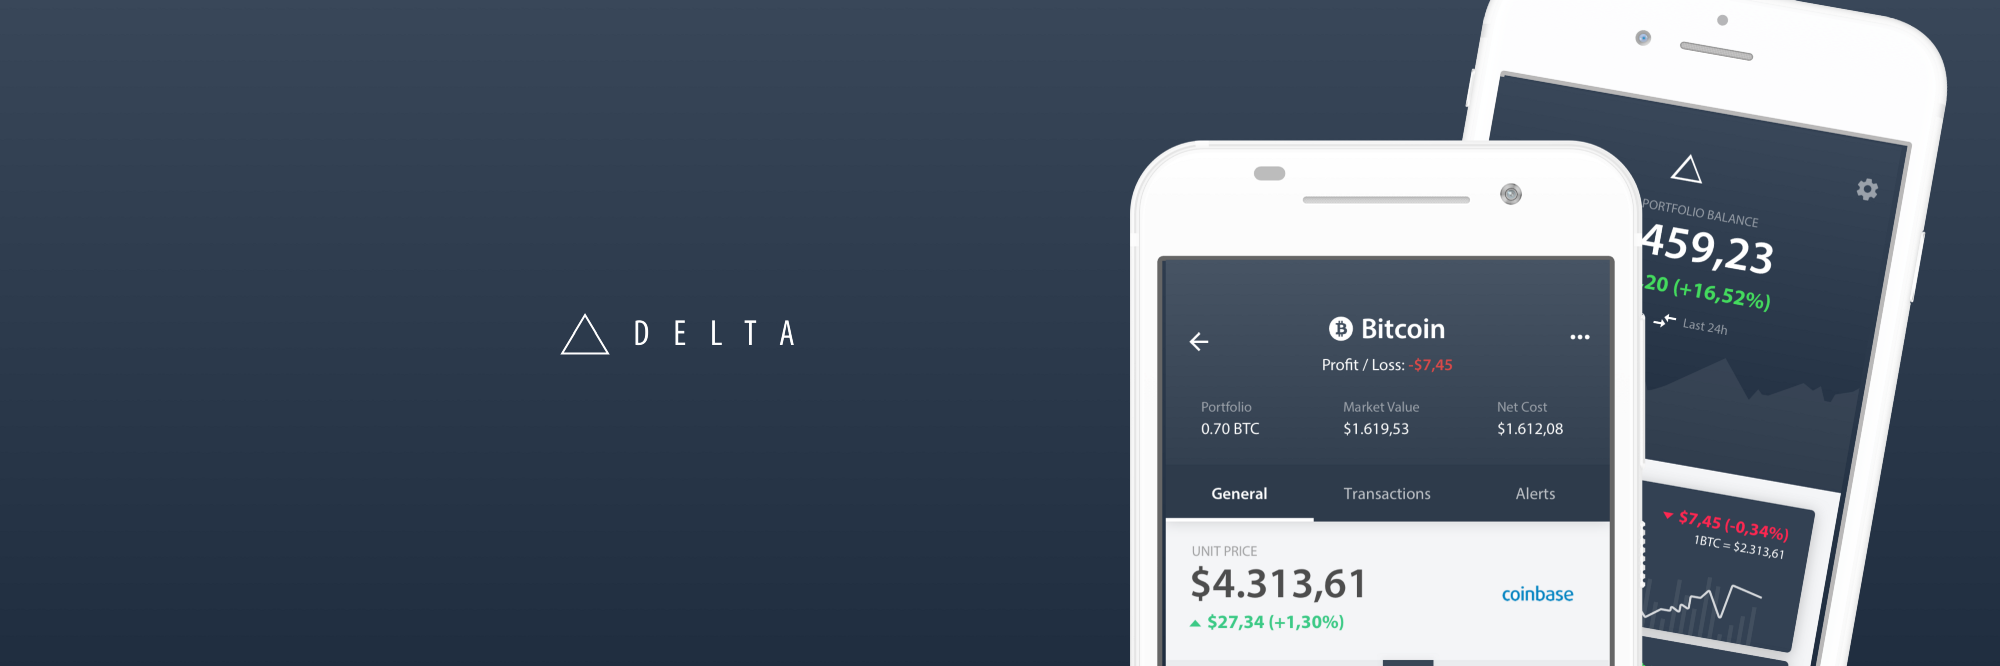 Delta cryptocurrency portfolio what you have to know